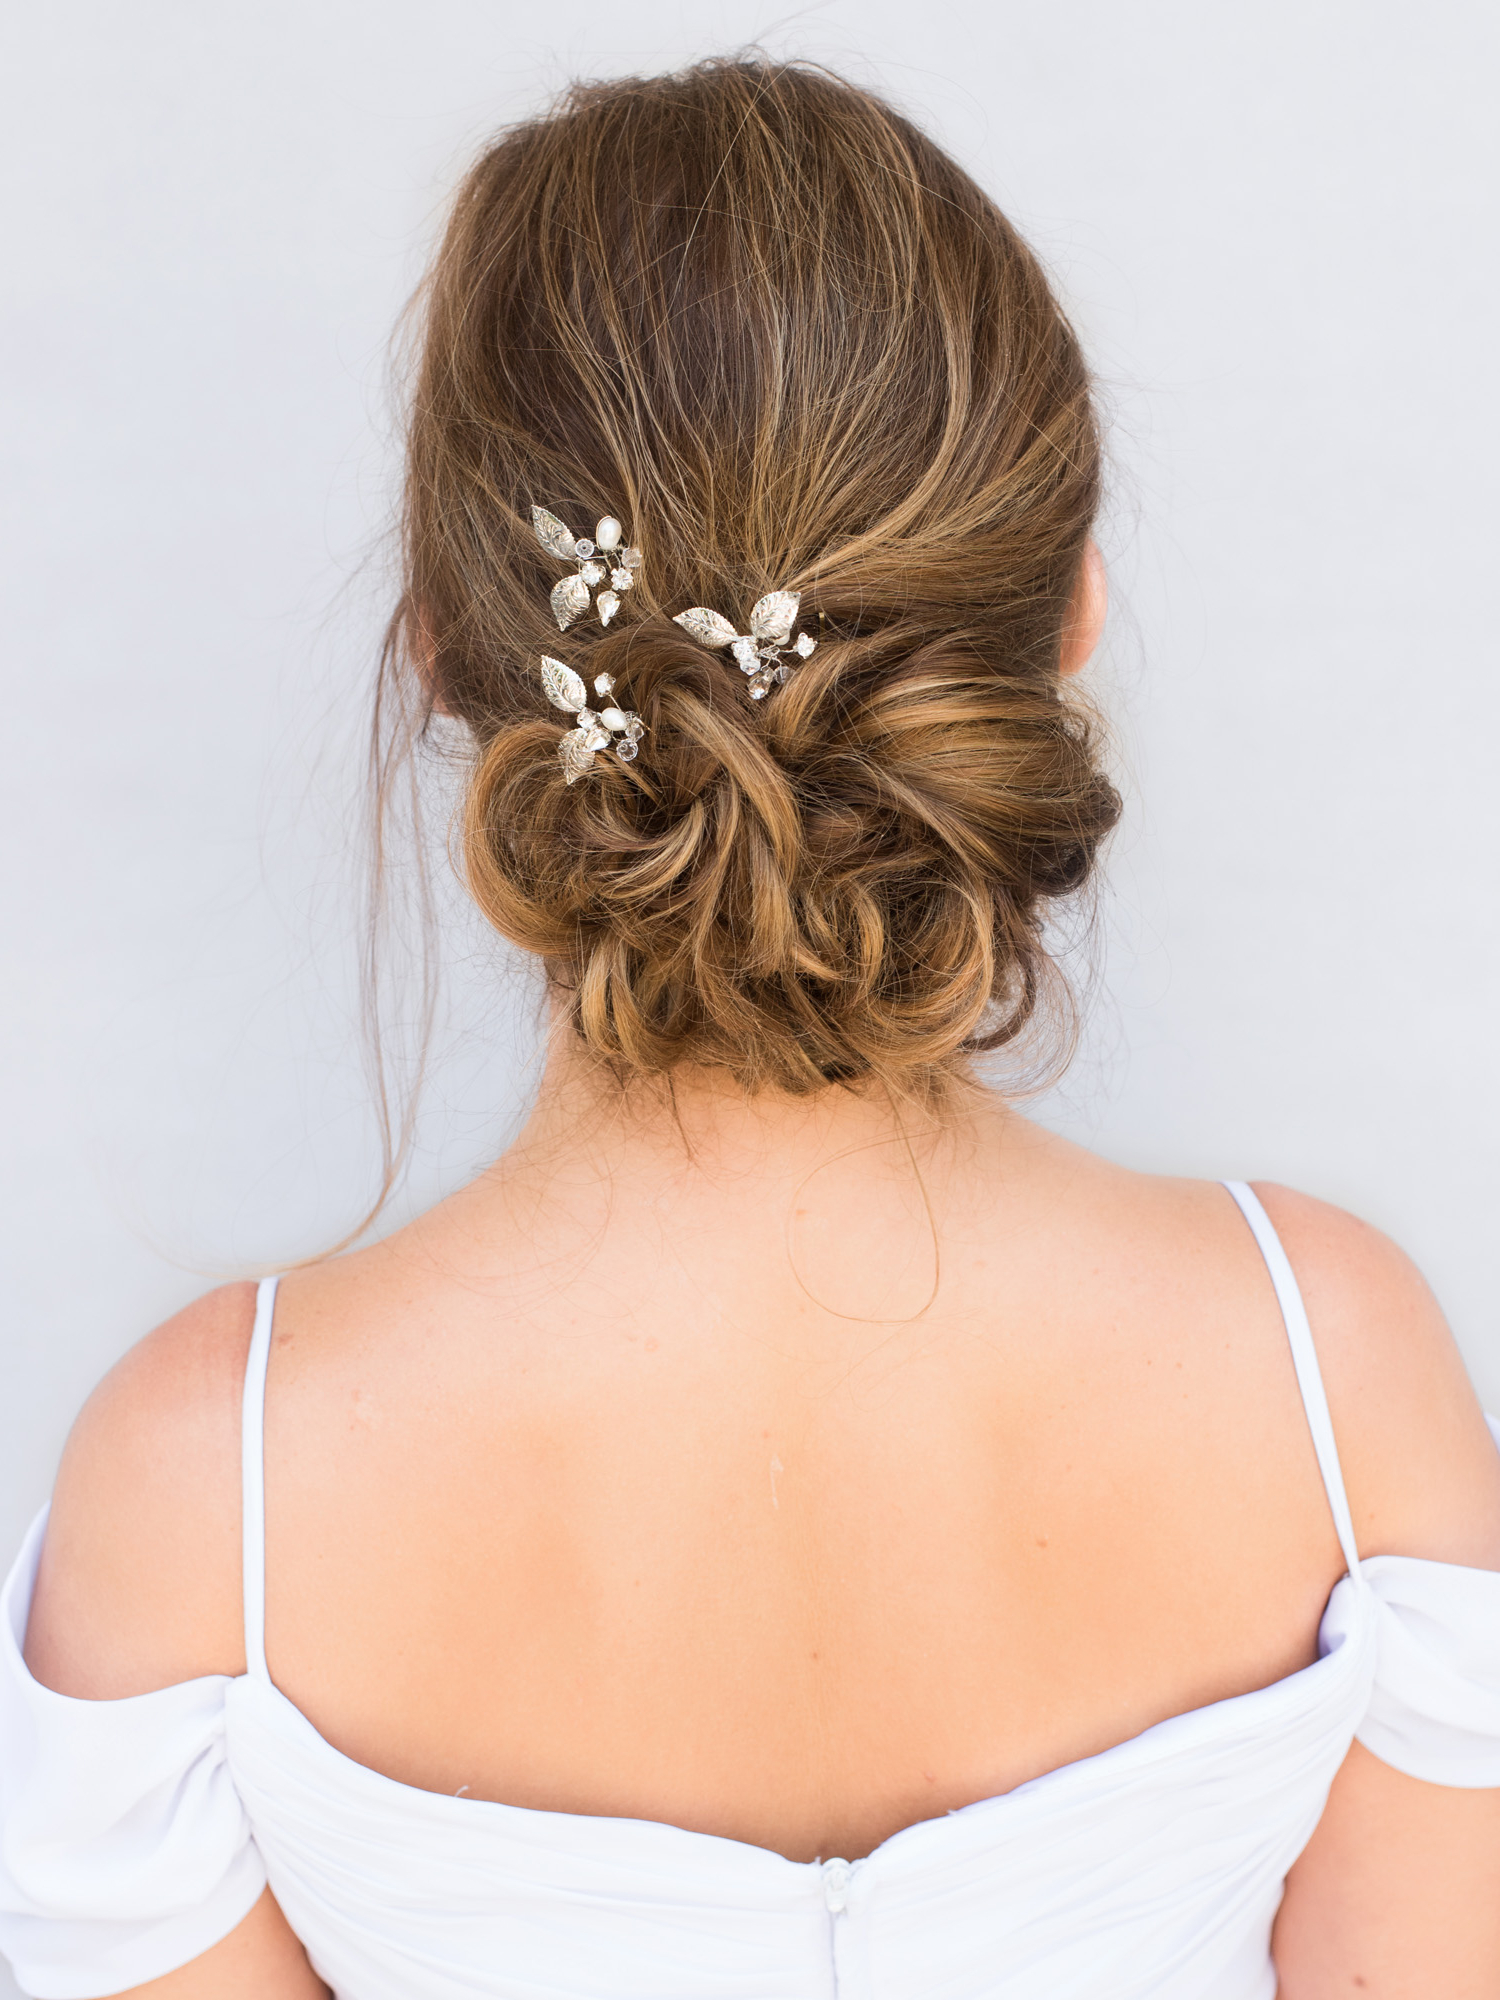 Most Up To Date Side Bun Prom Hairstyles With Jewelled Barrettes Inside Top 10 Tips For Choosing Your Bridal Hair Accessories – Hair Comes (View 8 of 20)